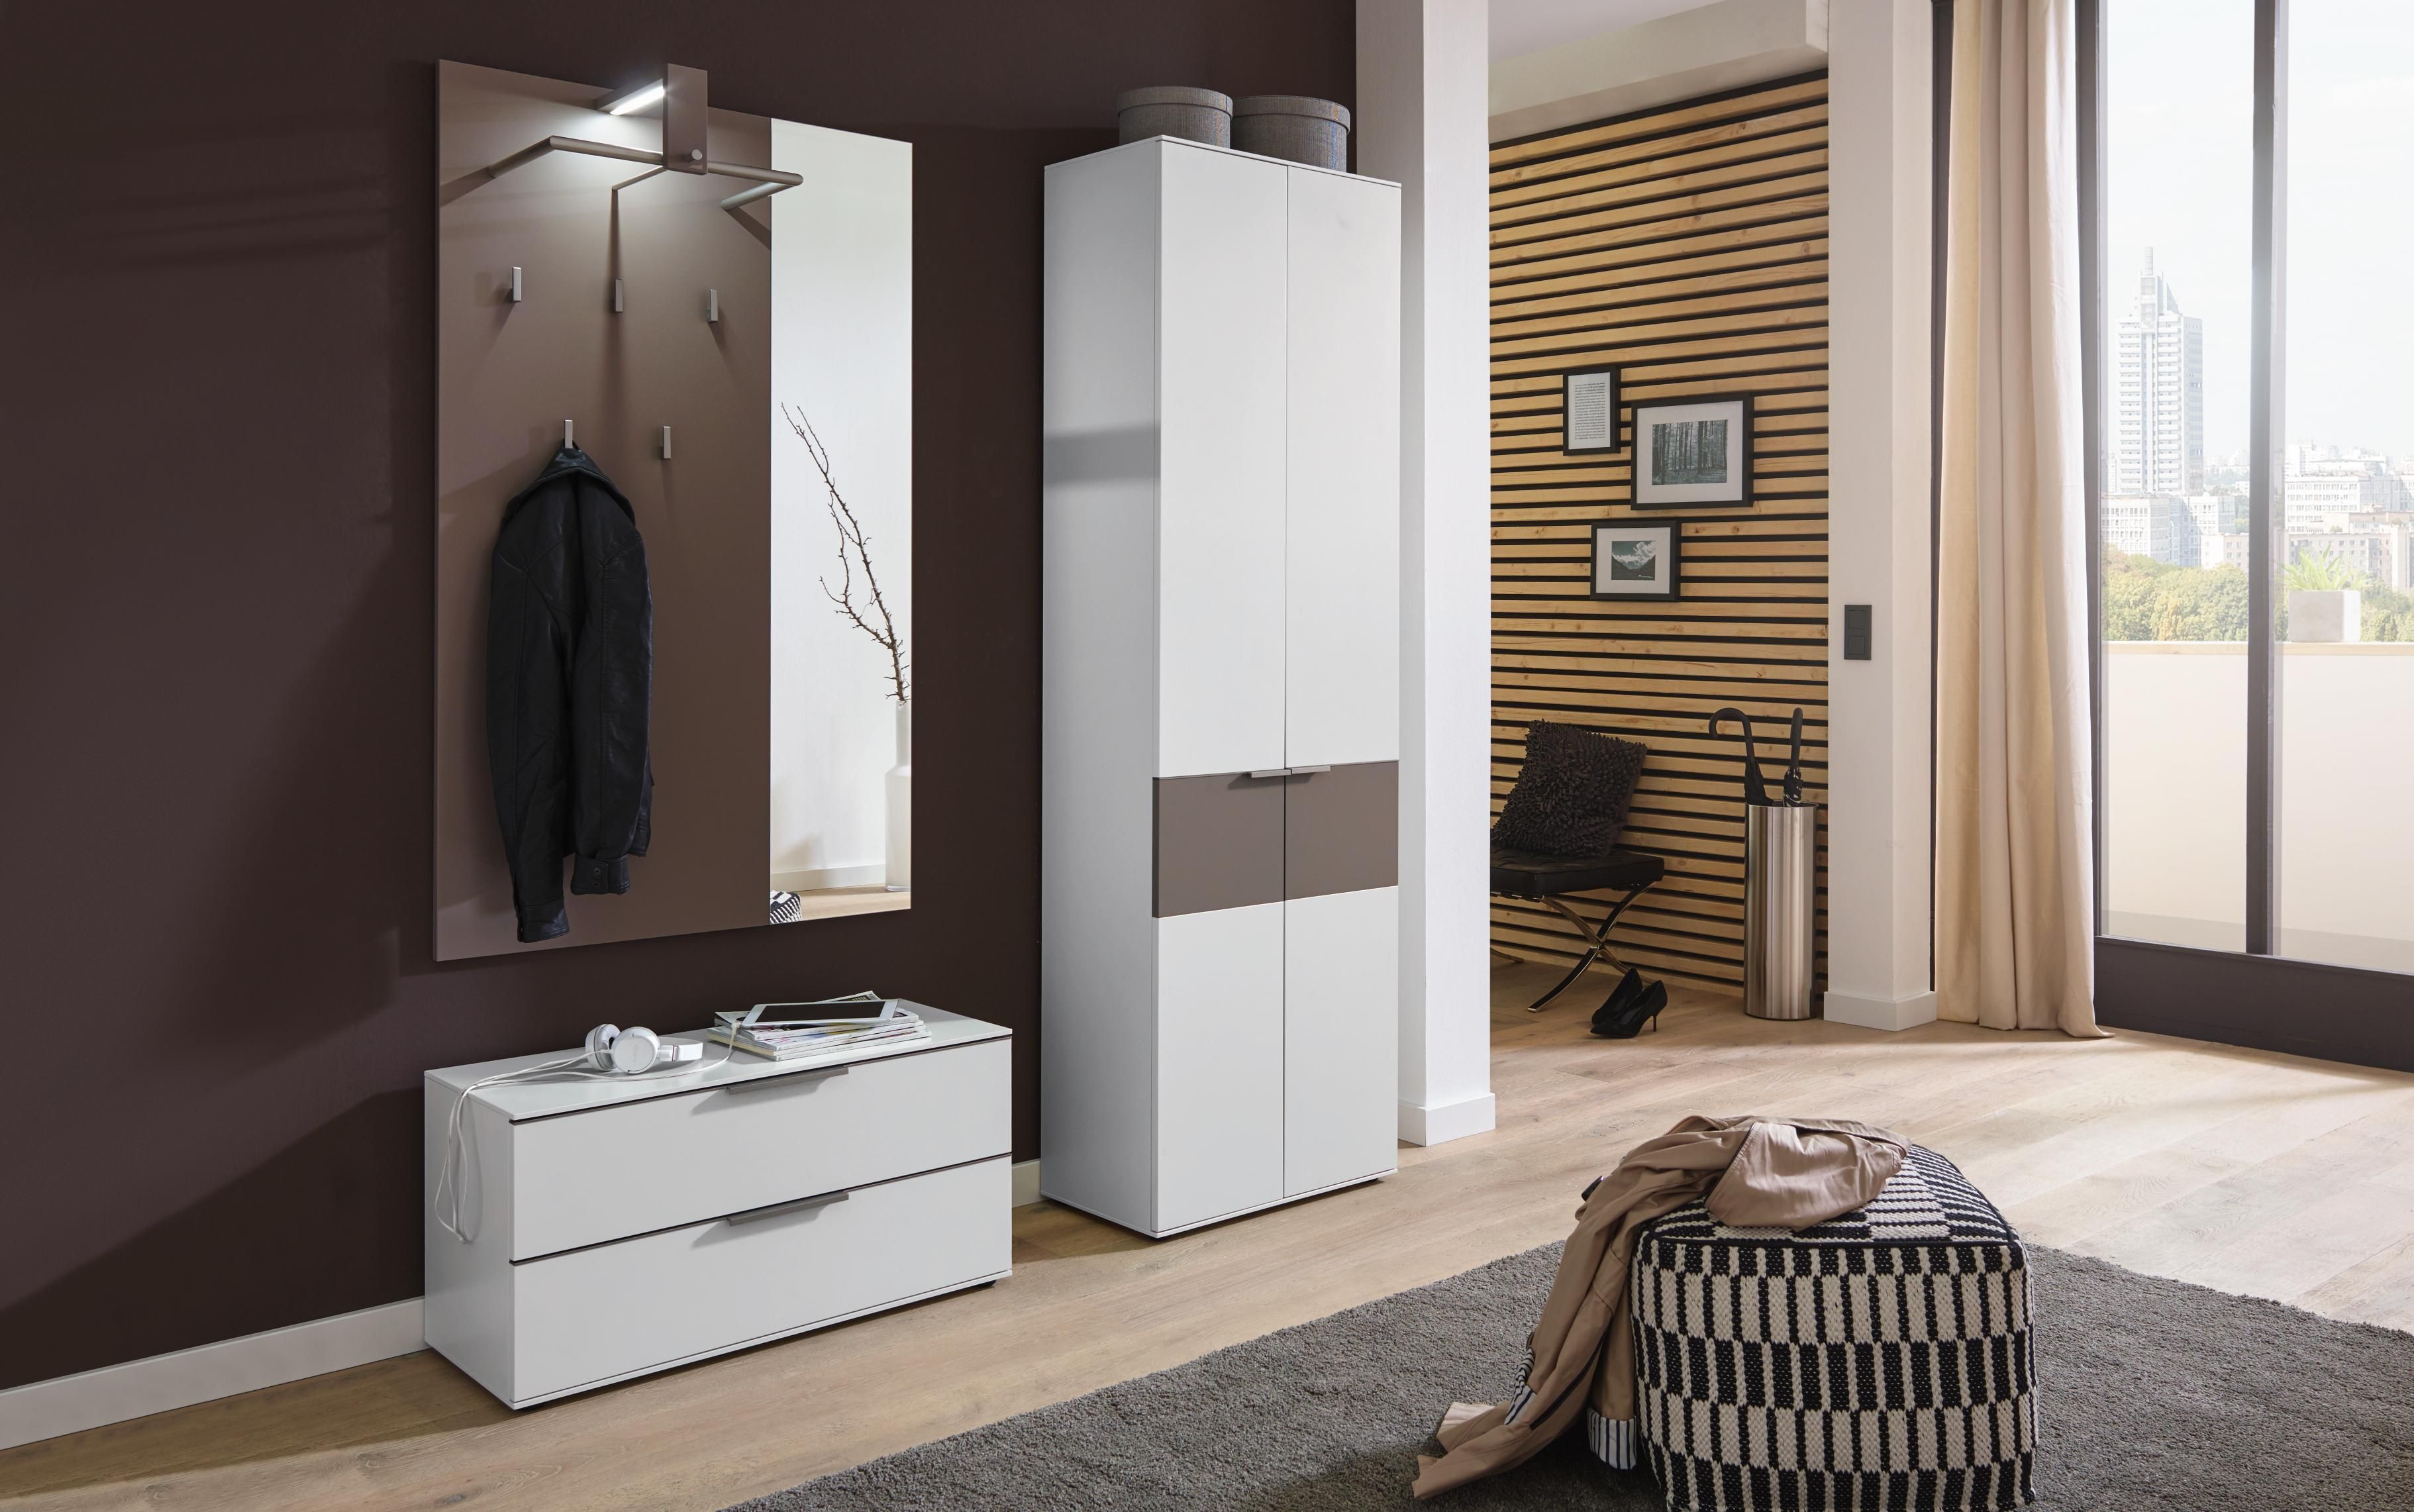 vorzimmer von dieter knoll collection gaderobe in 2019 pinterest gaderobe garderobe und. Black Bedroom Furniture Sets. Home Design Ideas